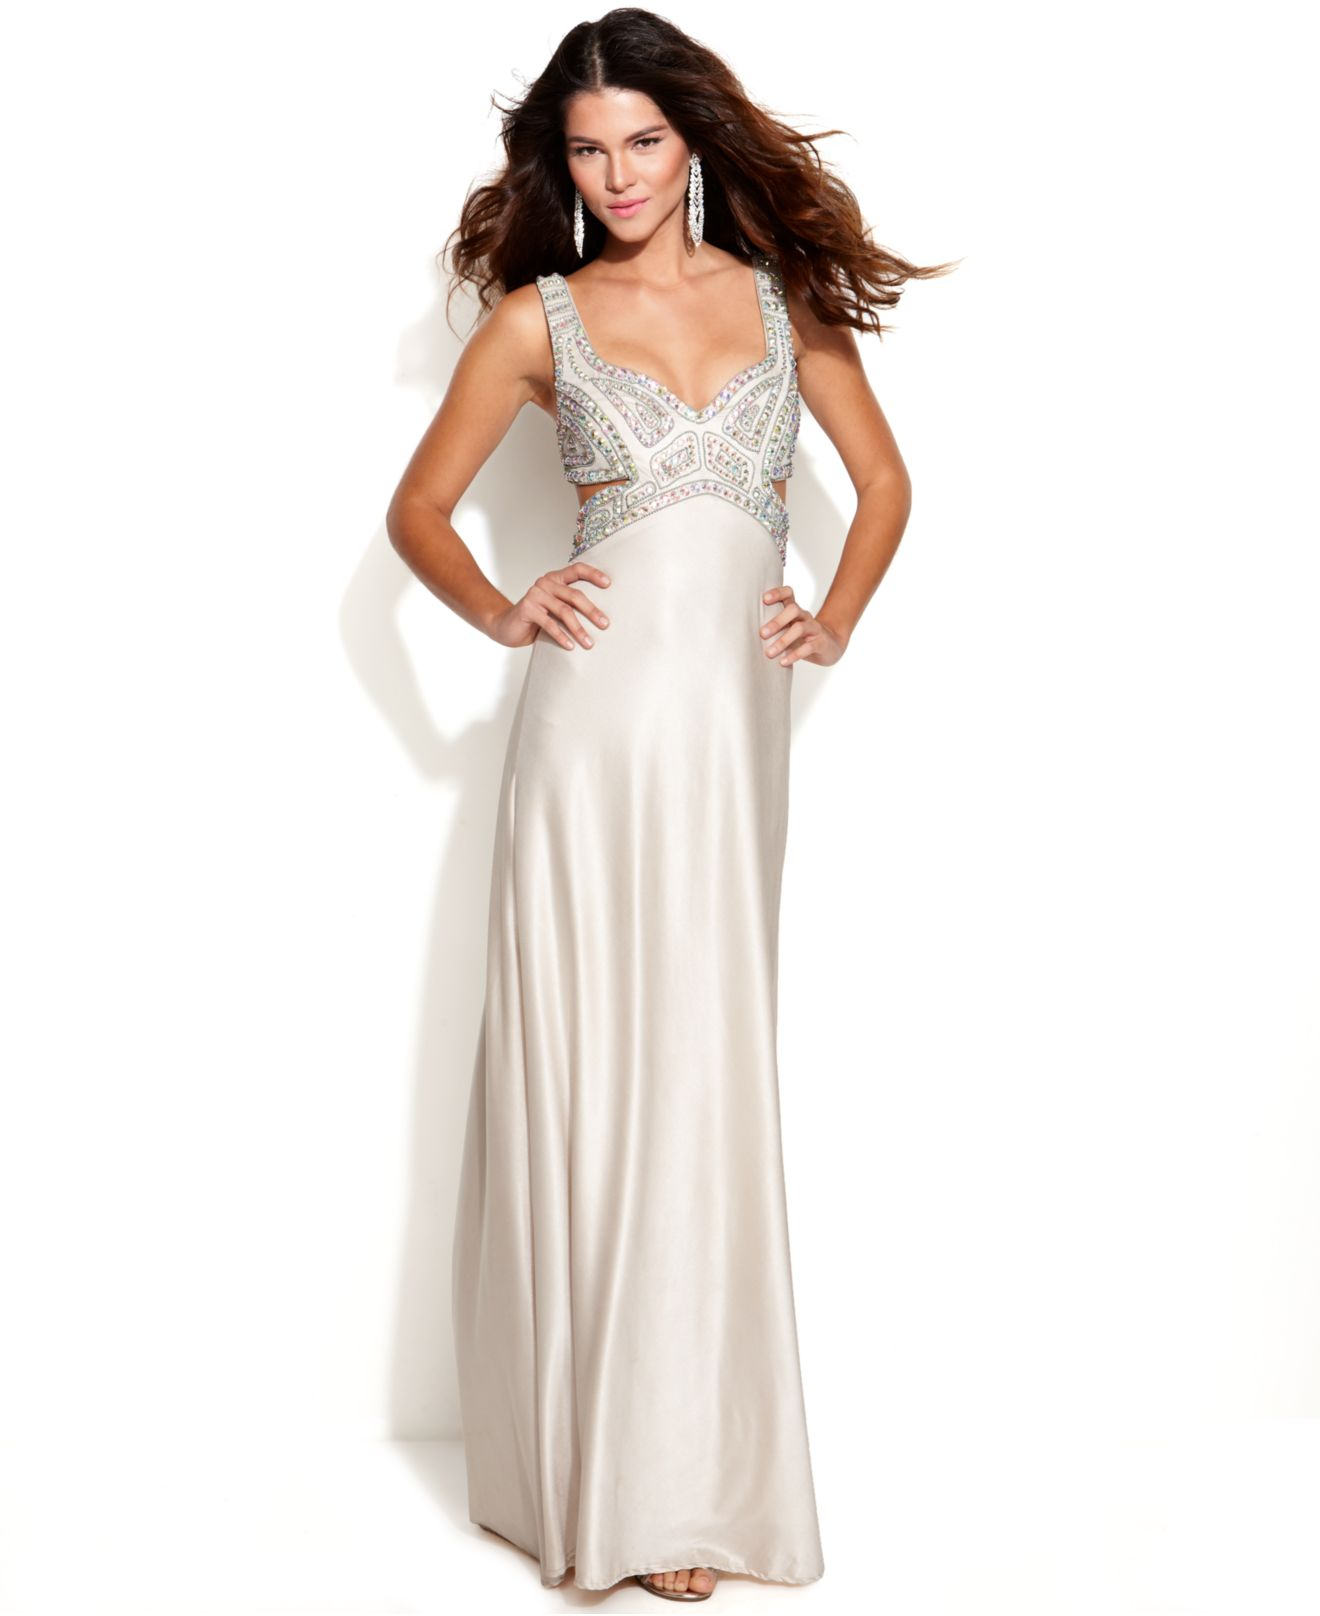 Lyst - Betsy & Adam Sleeveless Embellished Cutout Gown in White